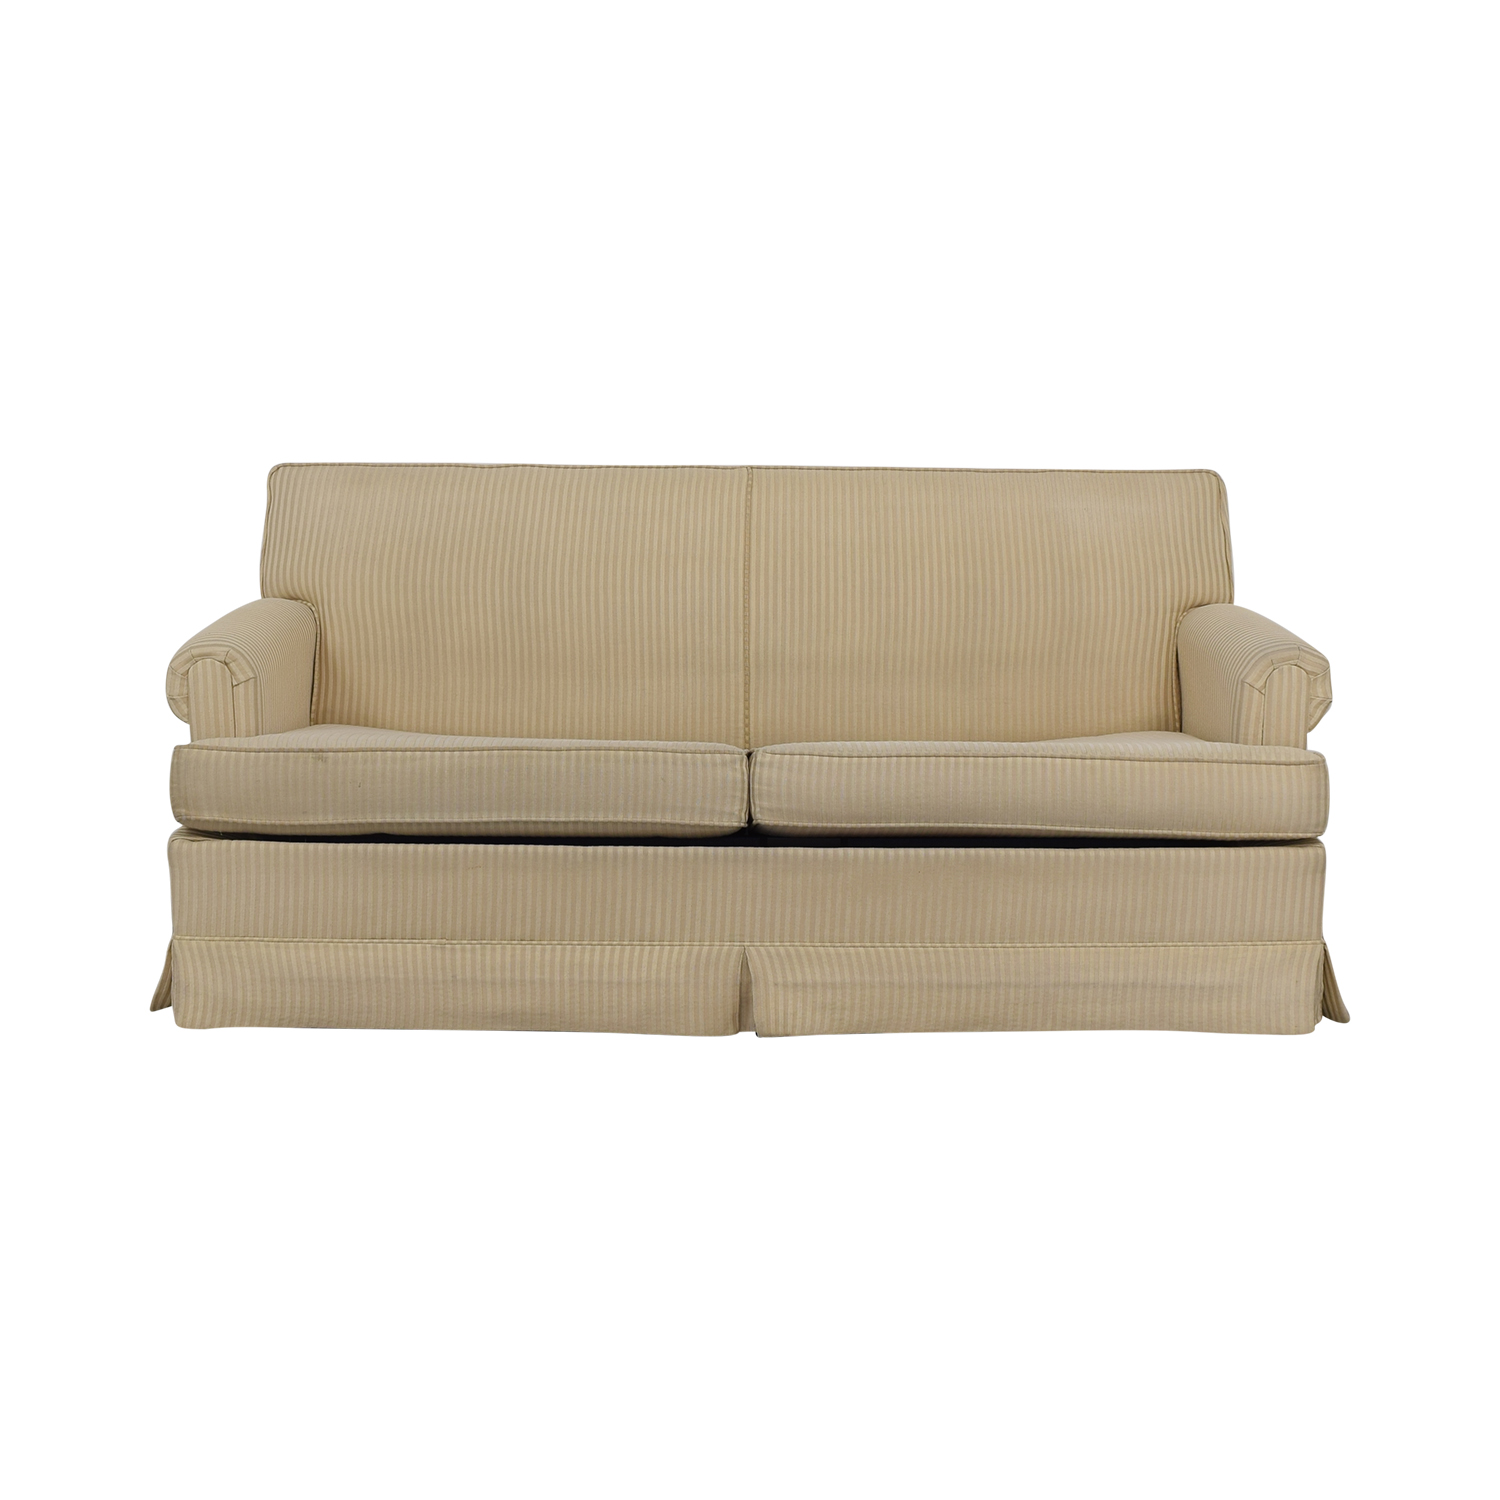 Stearns & Foster Stearns & Foster Two-Cushion Sleeper Sofa